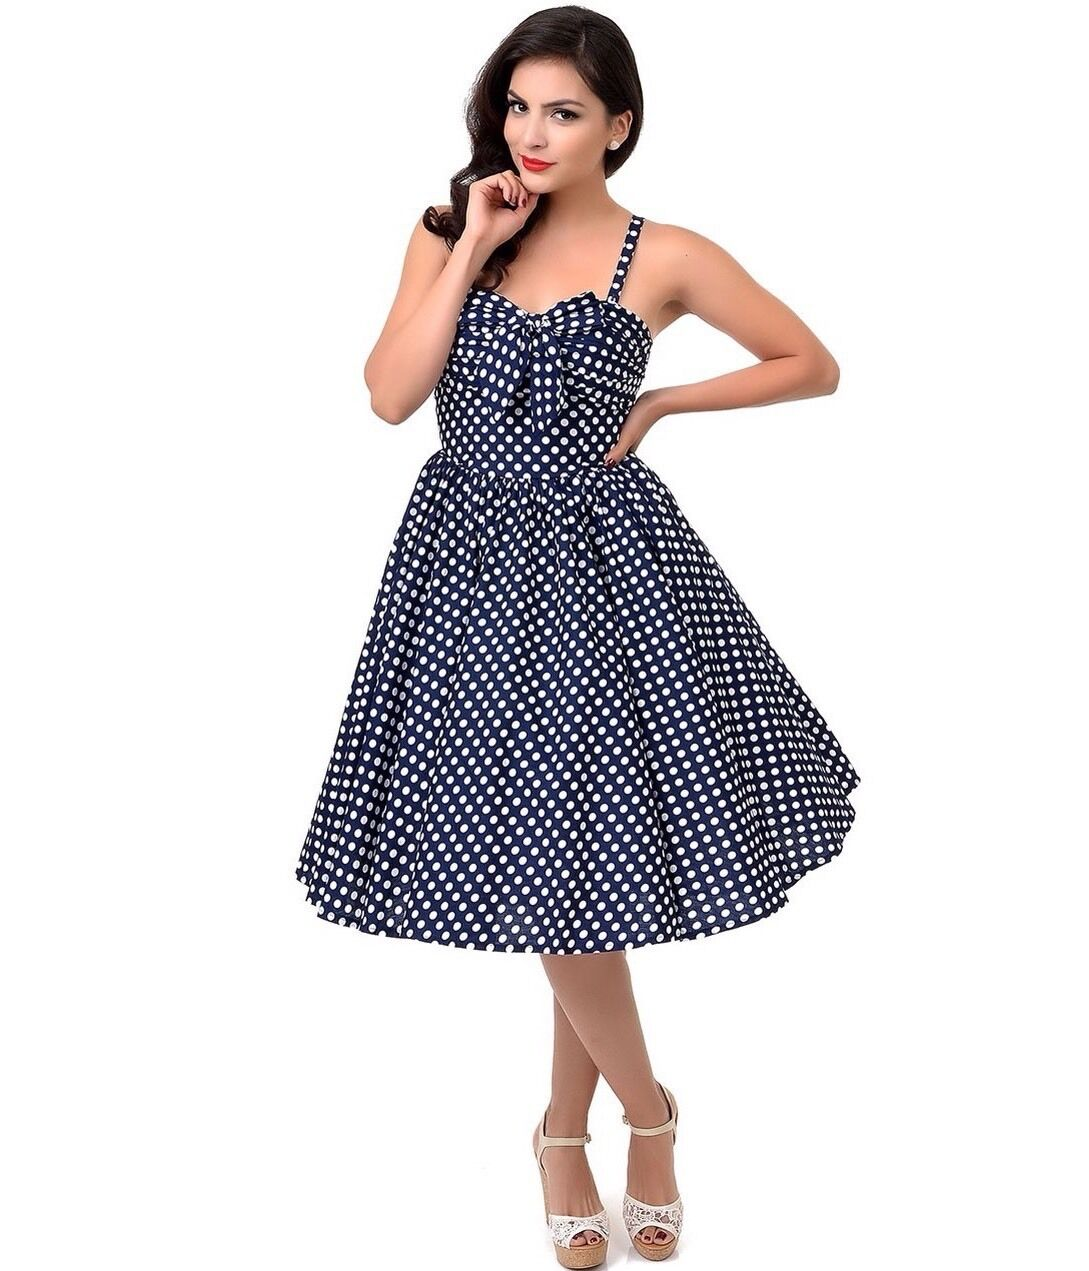 New Pinup Unique Vintage Iconic Navy & White Polka Dot Golightly Swing Dress XS